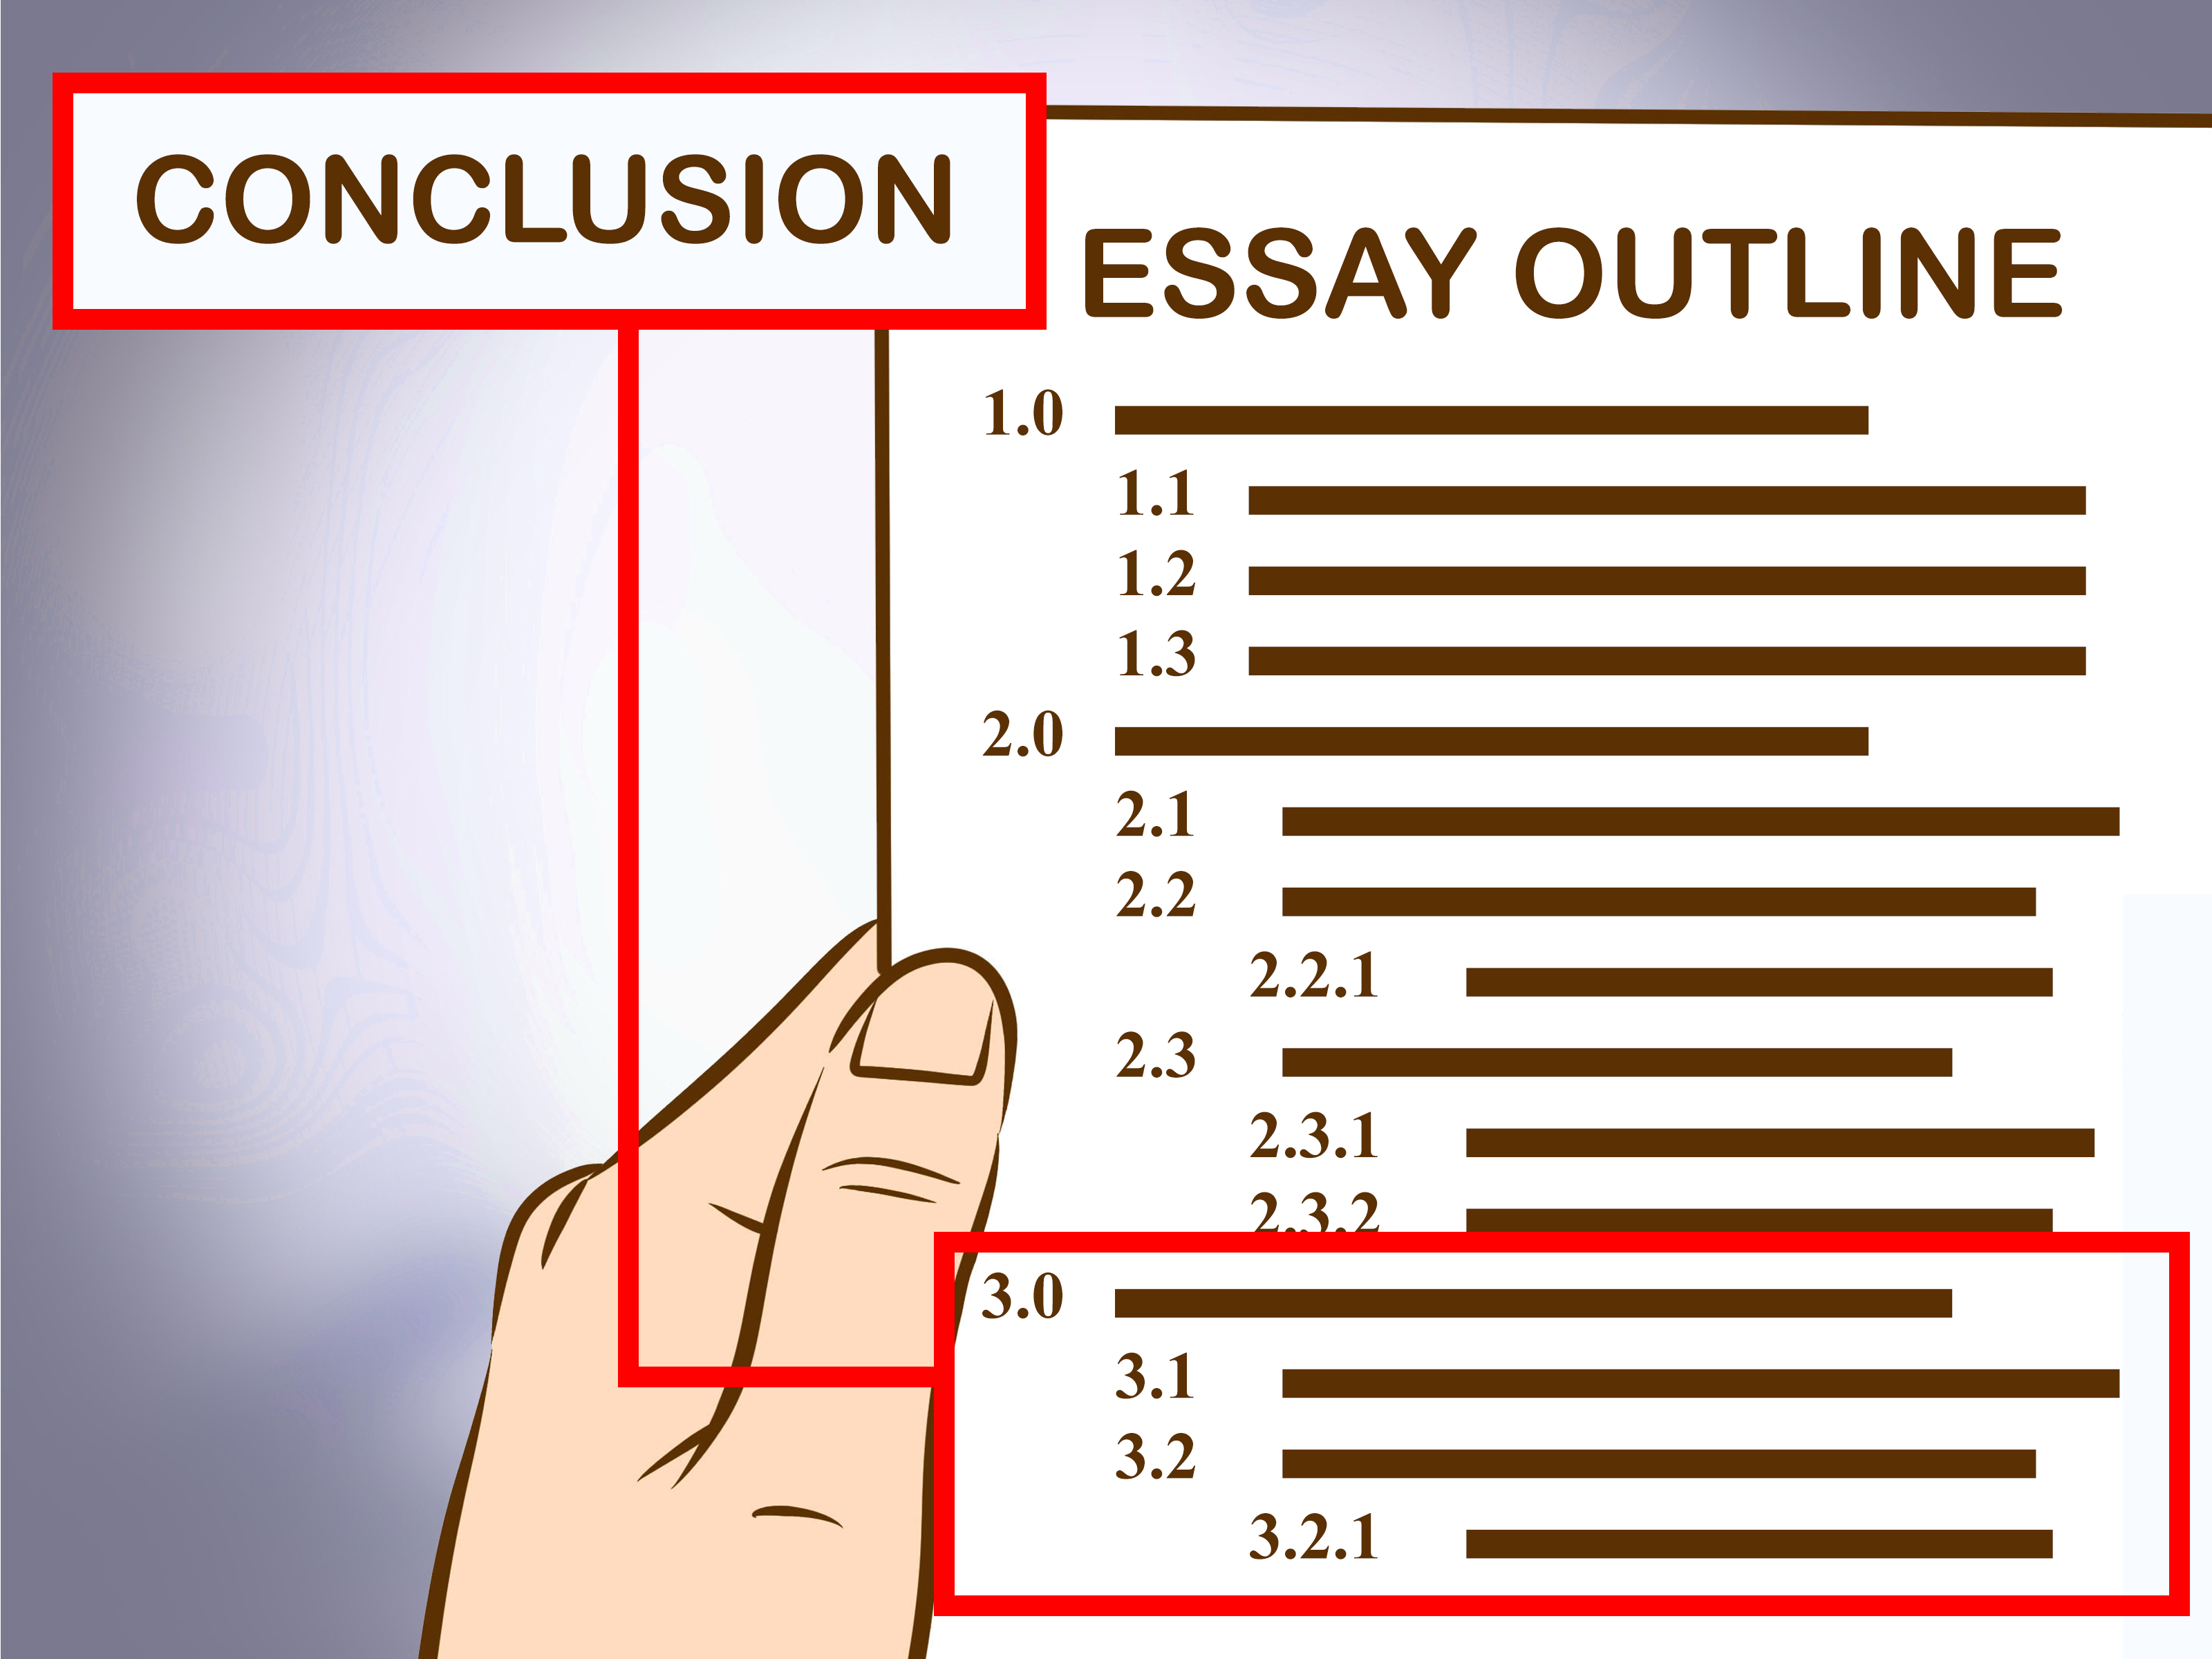 004 Write An Essay Outline Step Version Example How Excellent To High School Full